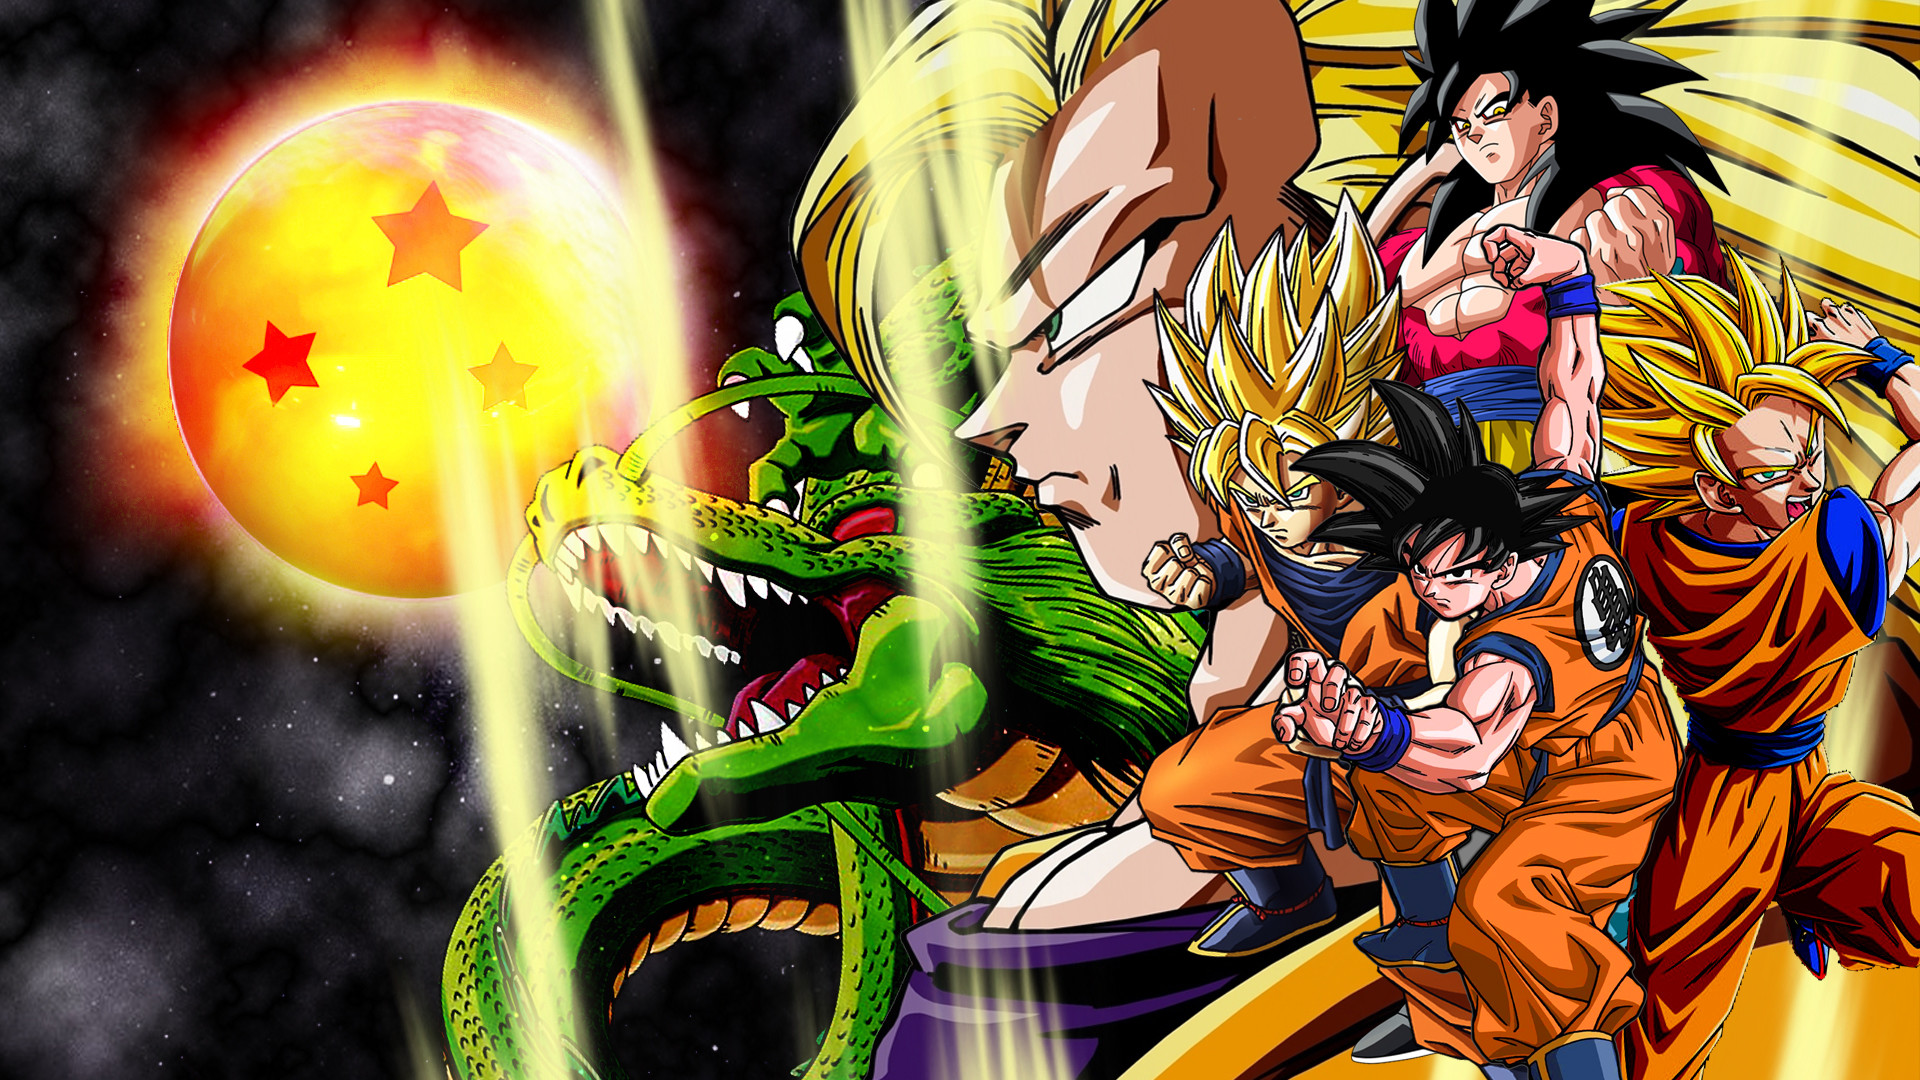 Dragon ball gt wallpaper hd 64 images - Images dragon ball z ...